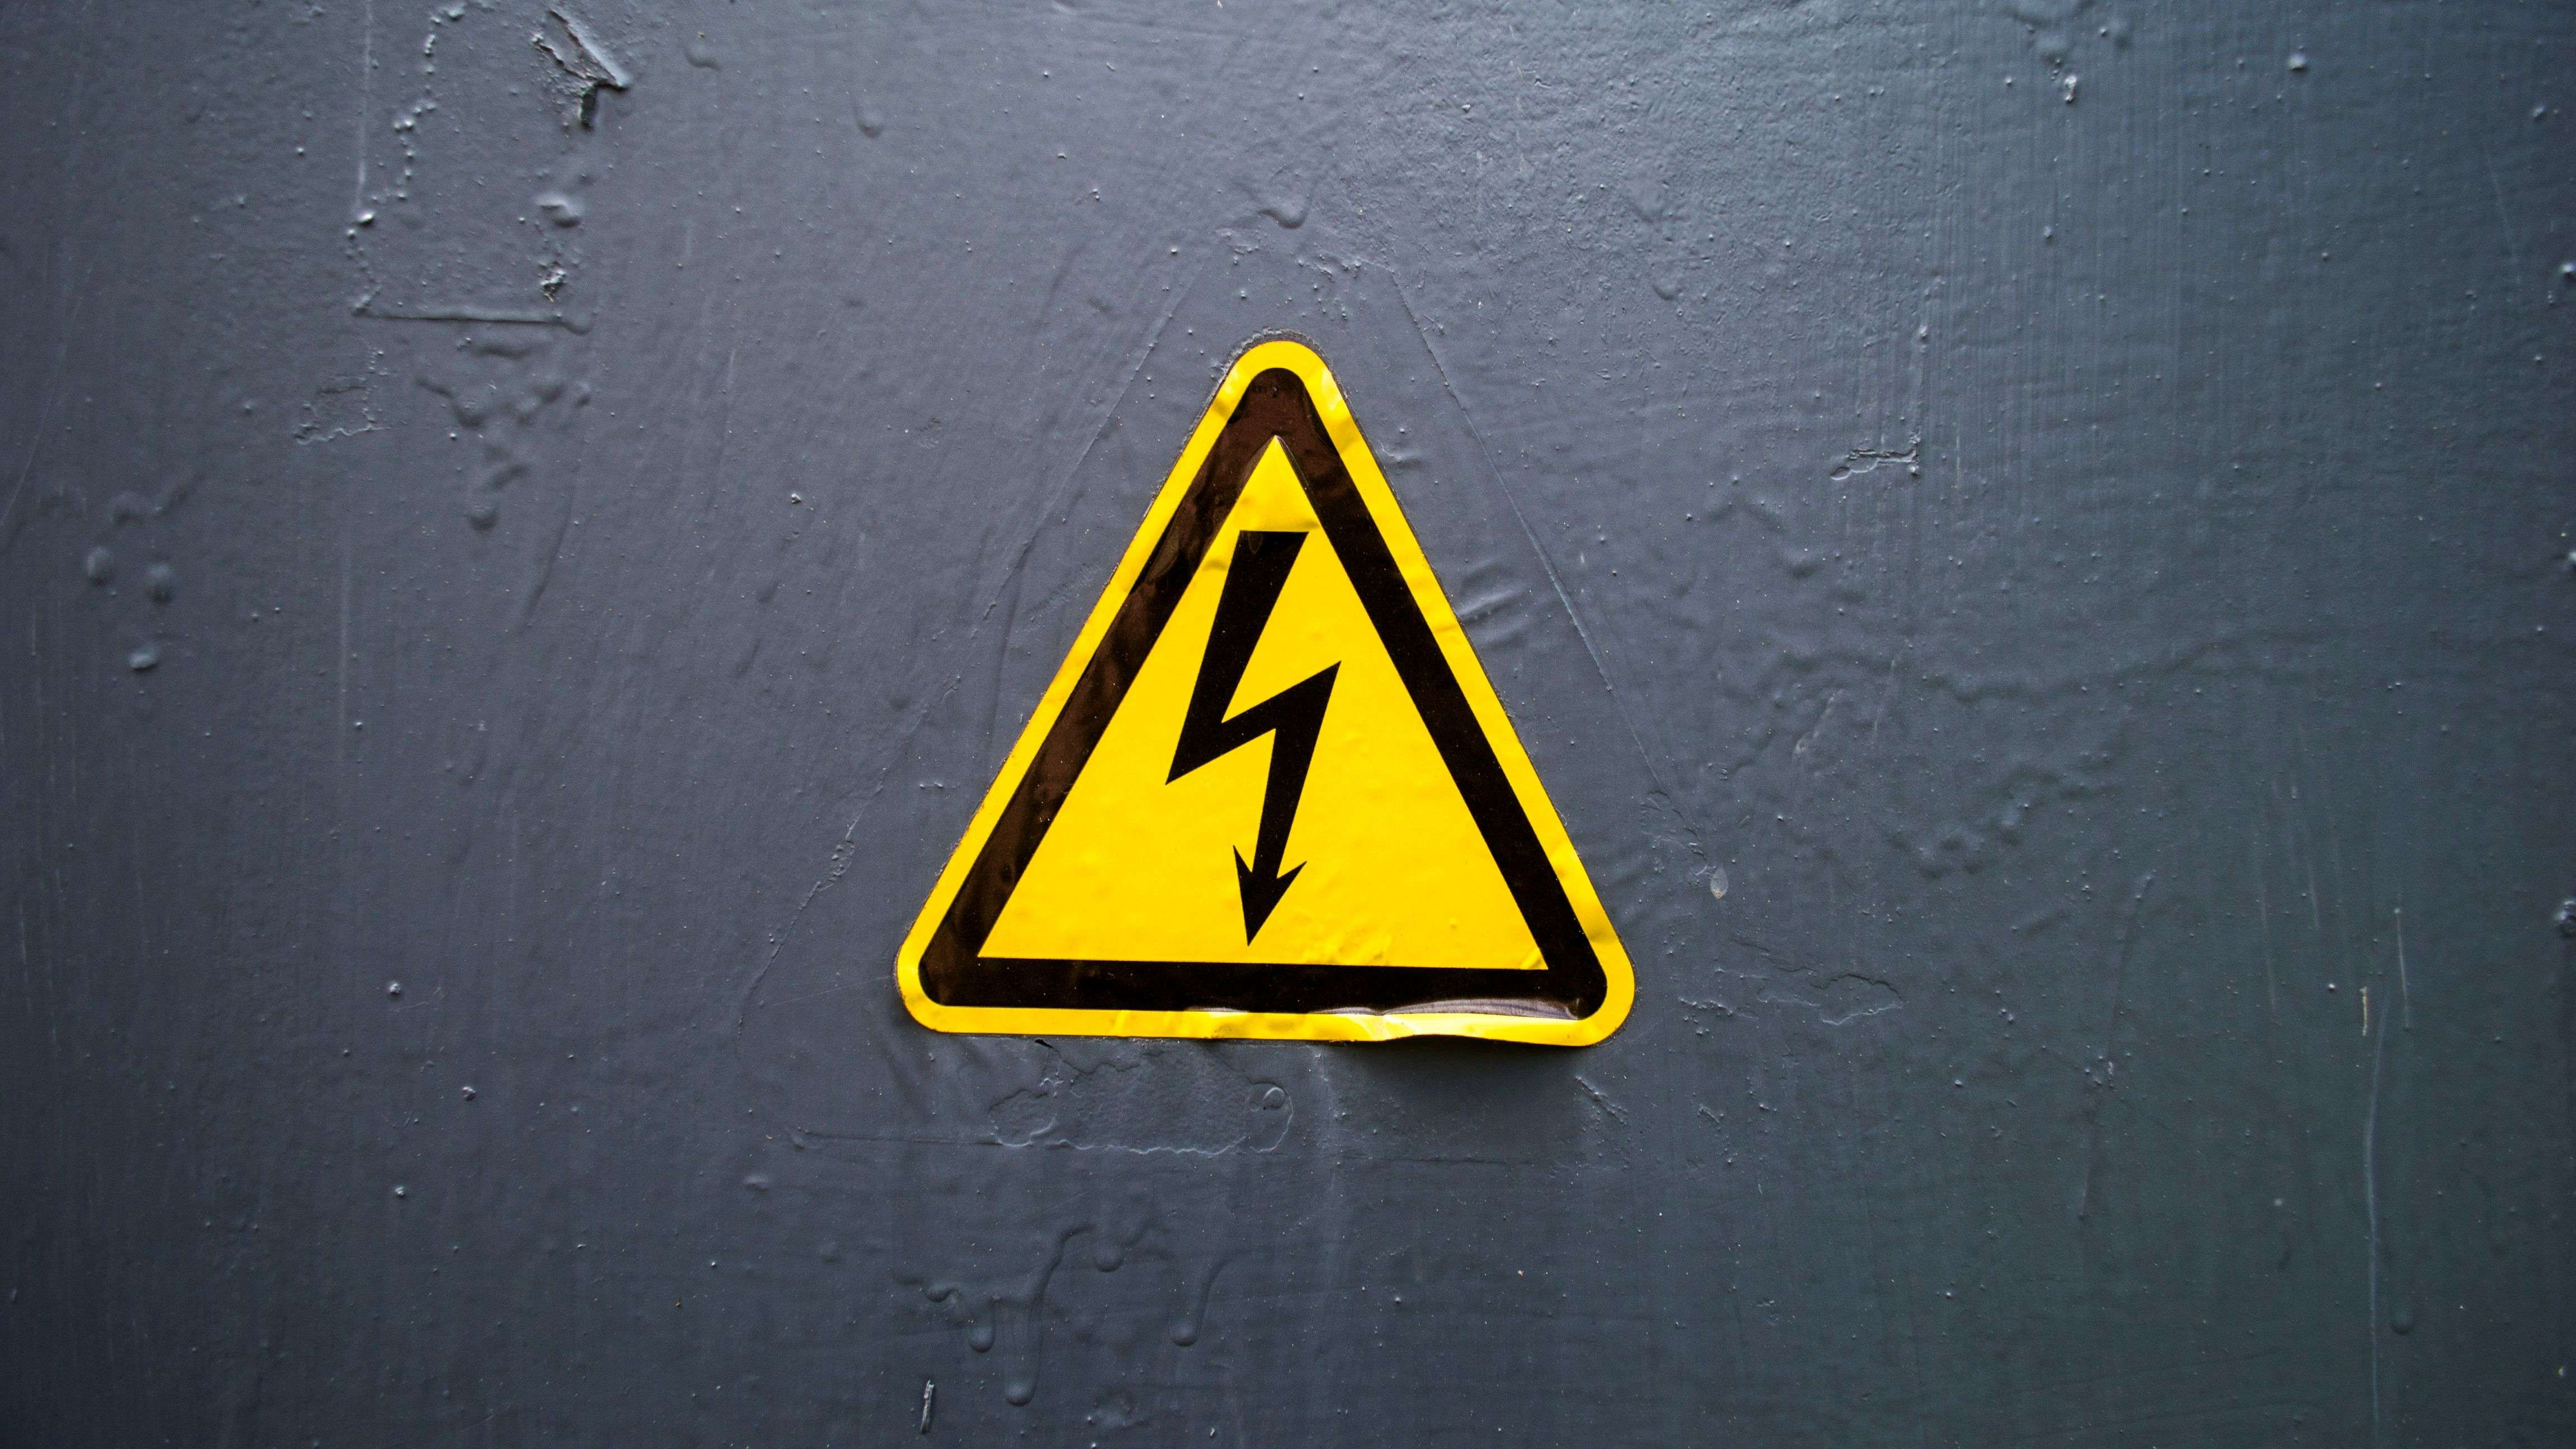 How to stay safe when working with electricity